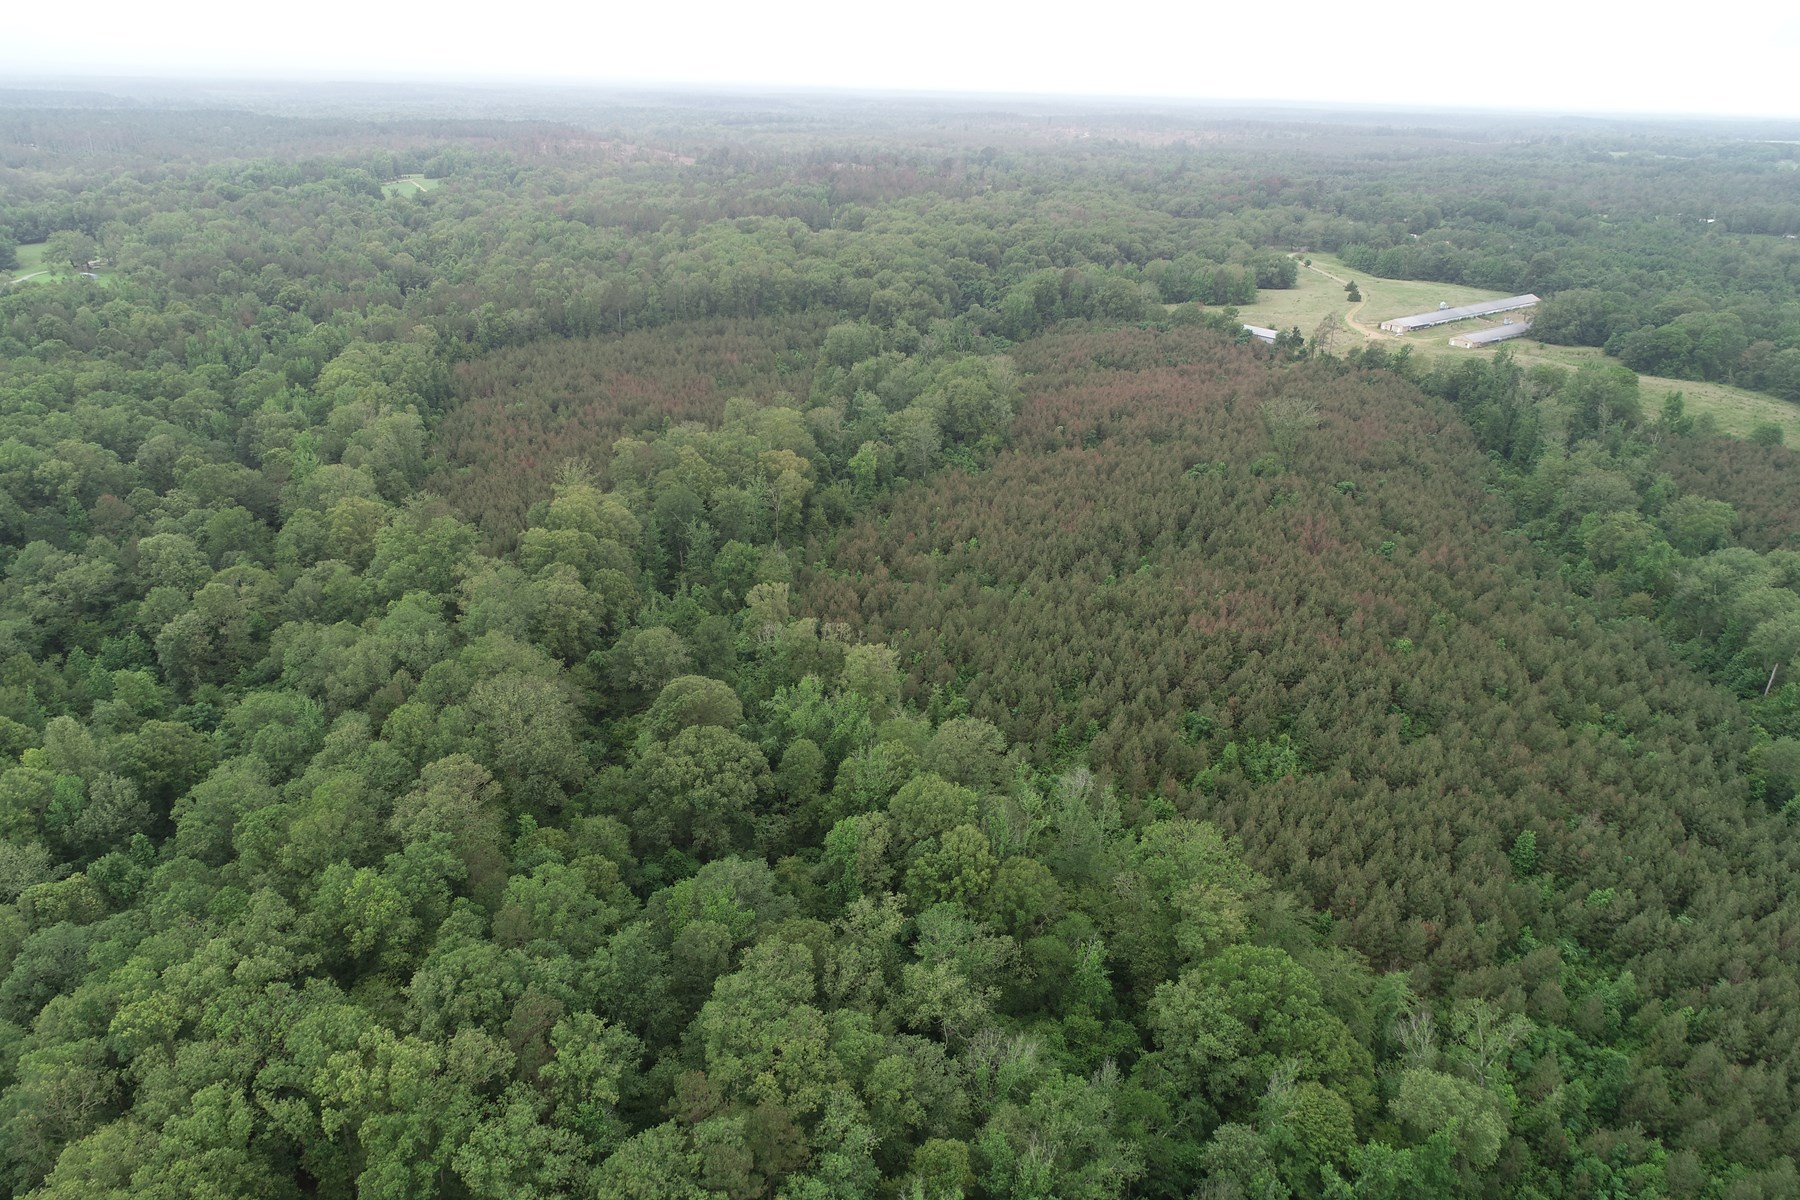 Planted Pine w/ Hdwd Timberland for Sale near Frenchport, AR